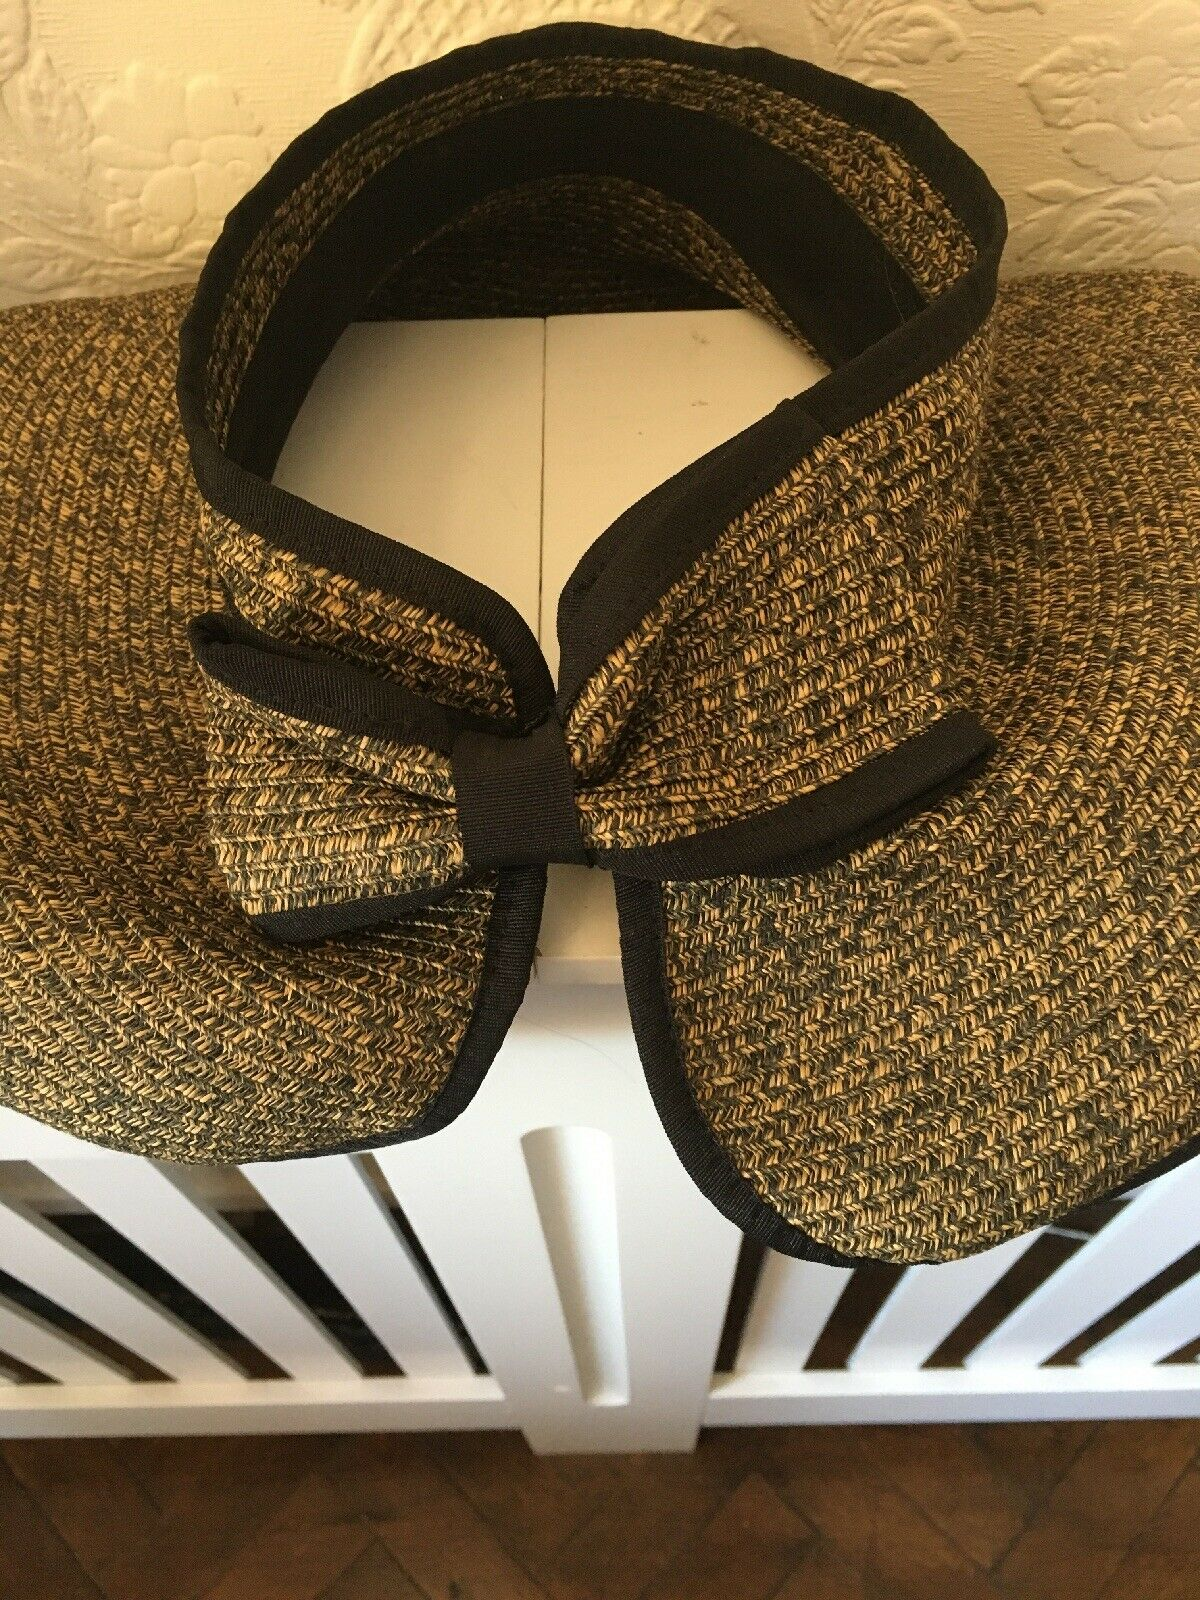 TOPLESS Hat, Wedding, Races, Special Occasions BIG HAIR Elegant SEE PICS ❤️Up Do